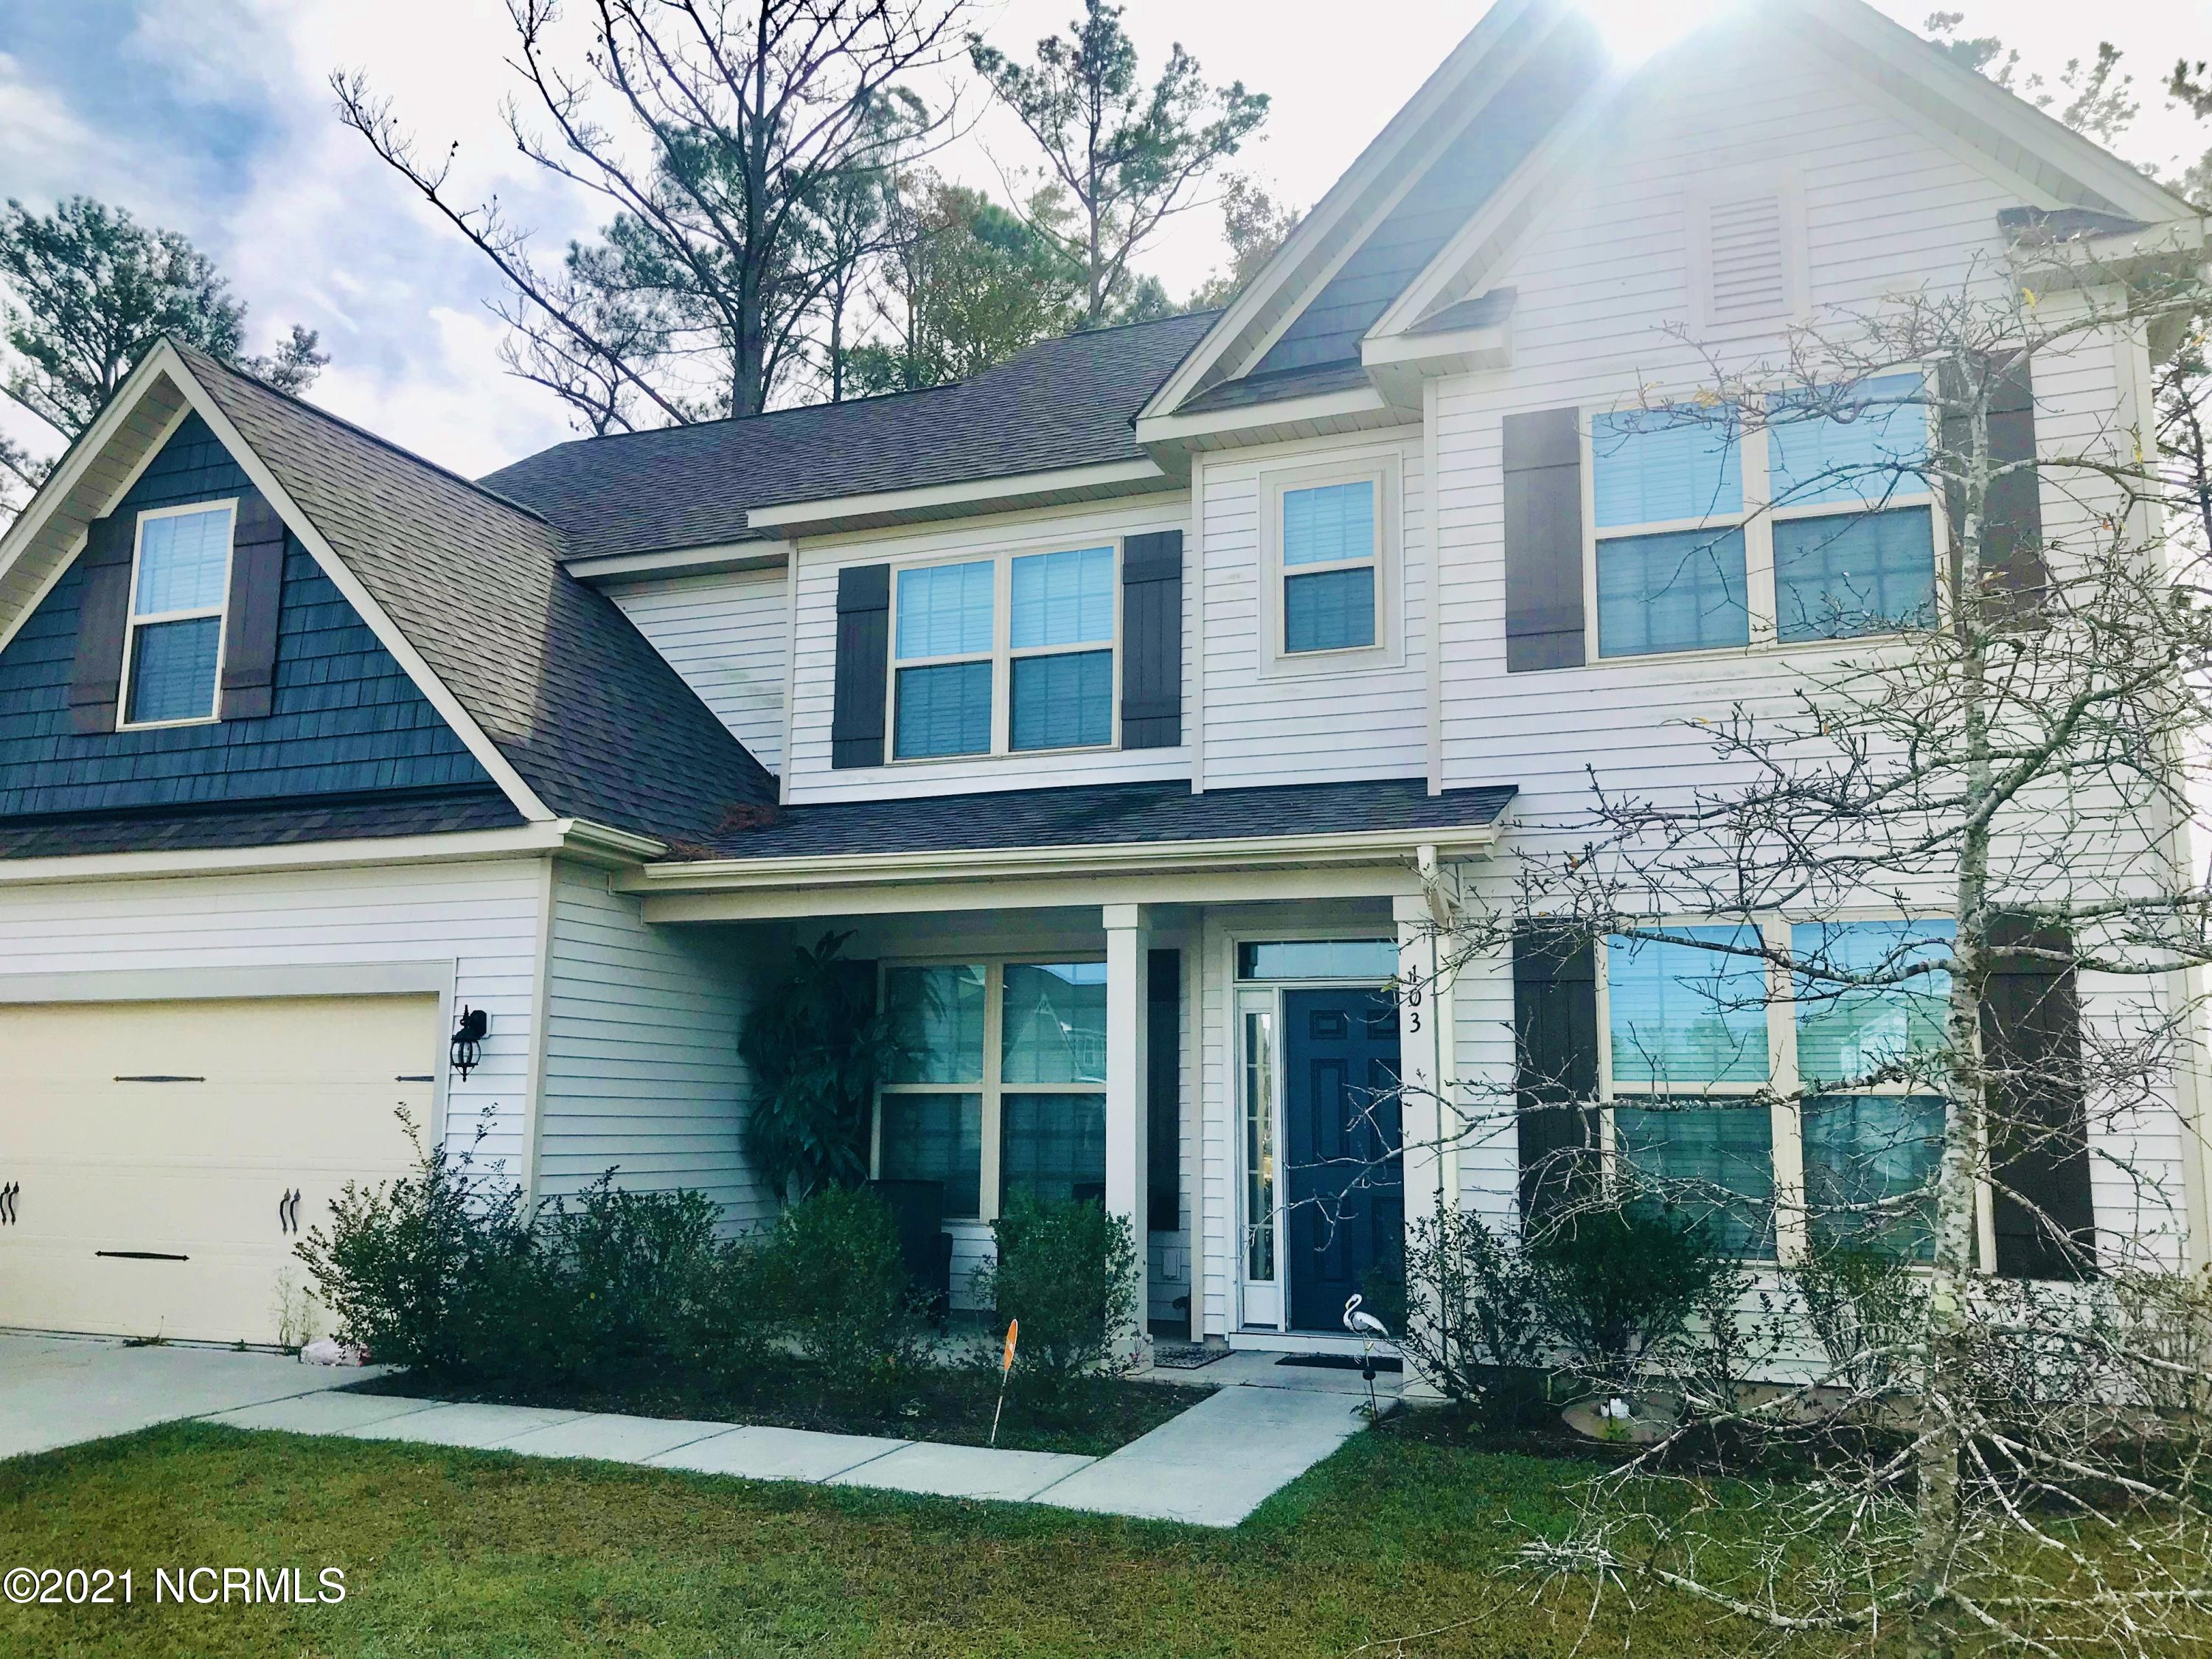 Sought after neighborhood within biking distance of Hammocks Beach State Park. 5 bedrooms with a FROG, a Flex/Office, and a Bonus Room! 3 full bathrooms. Fenced in yard. ***All VA & FHA Buyers need to attach an Appraisal Addendum to the offer.